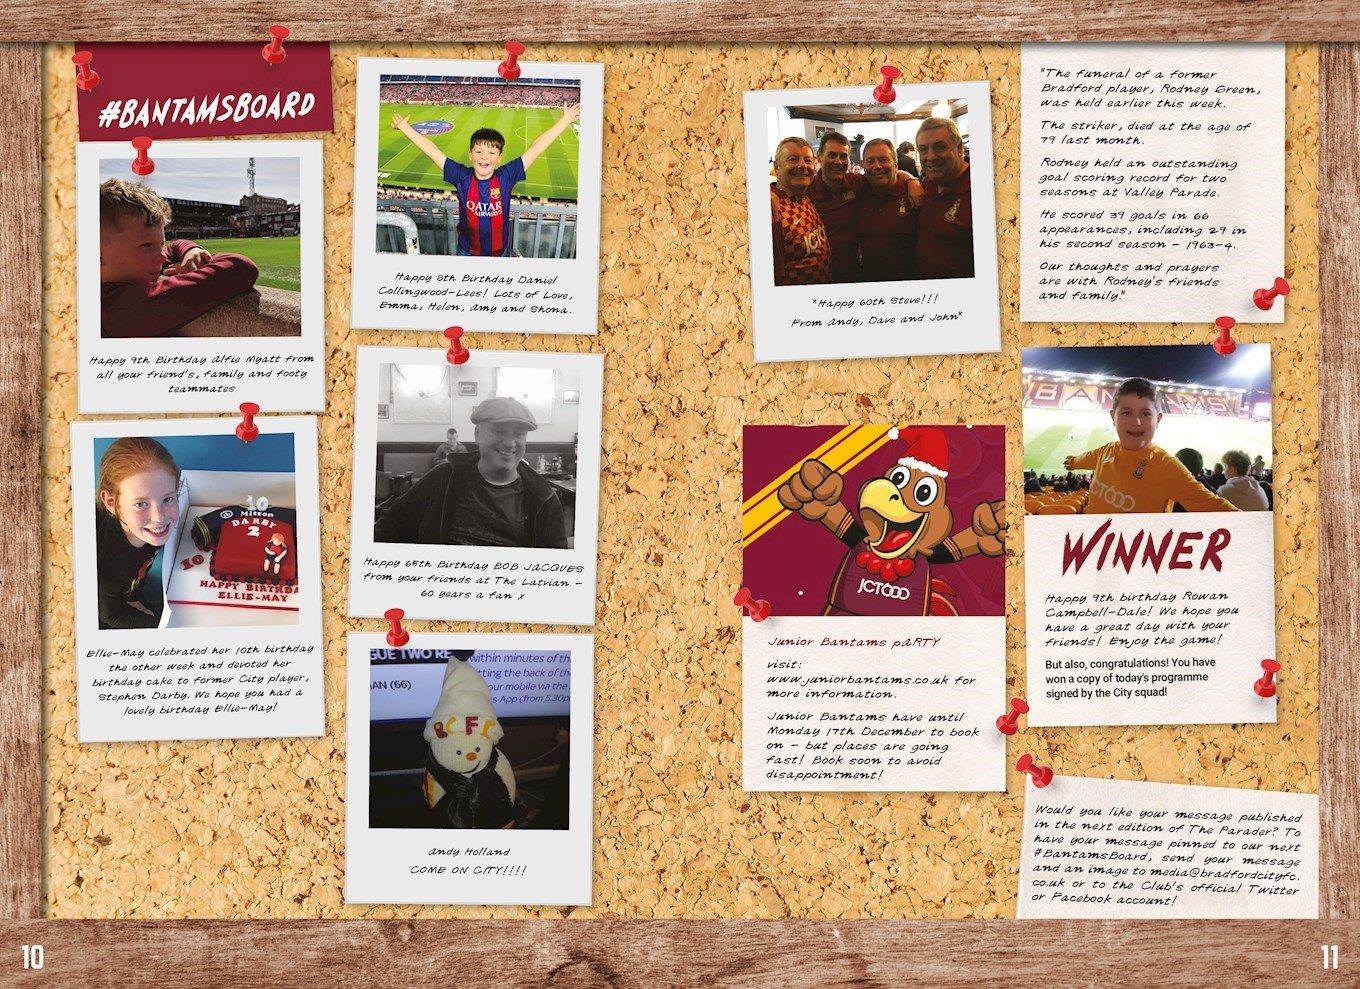 PUBLISH YOUR MESSAGE IN THE PARADER - News - Bradford City